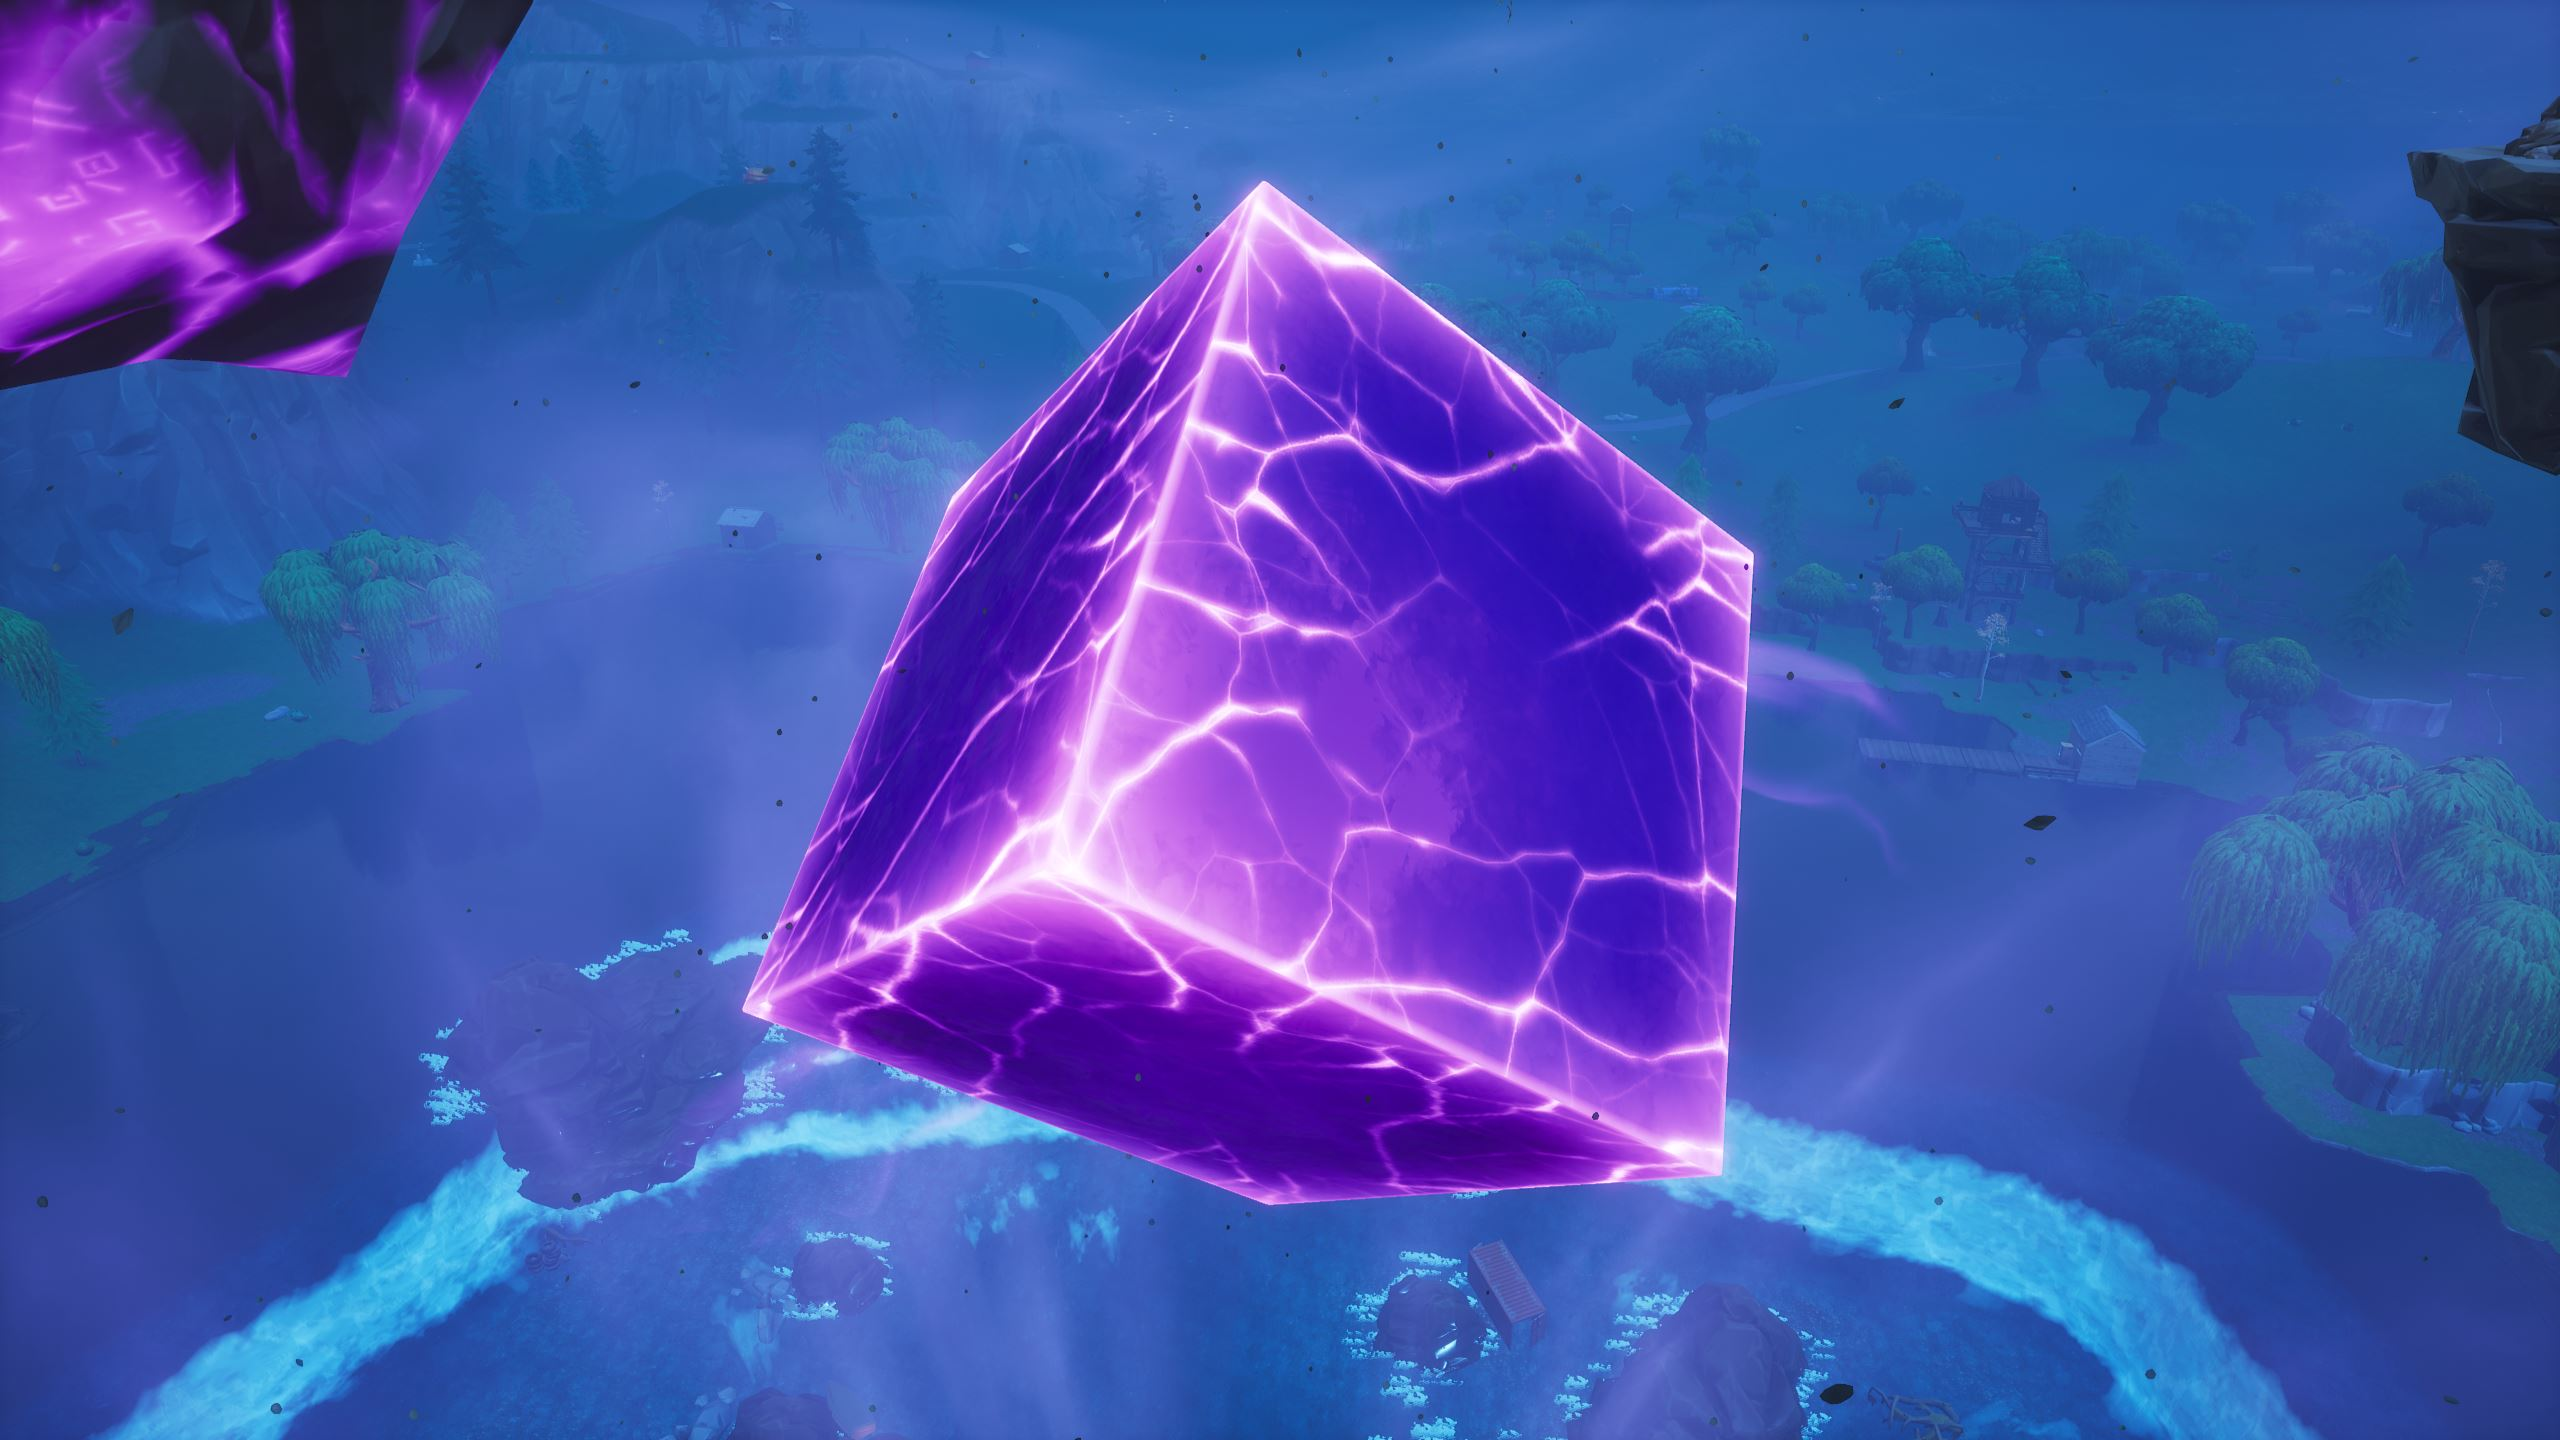 Fortnite's next big in-game event announced, pray for cube